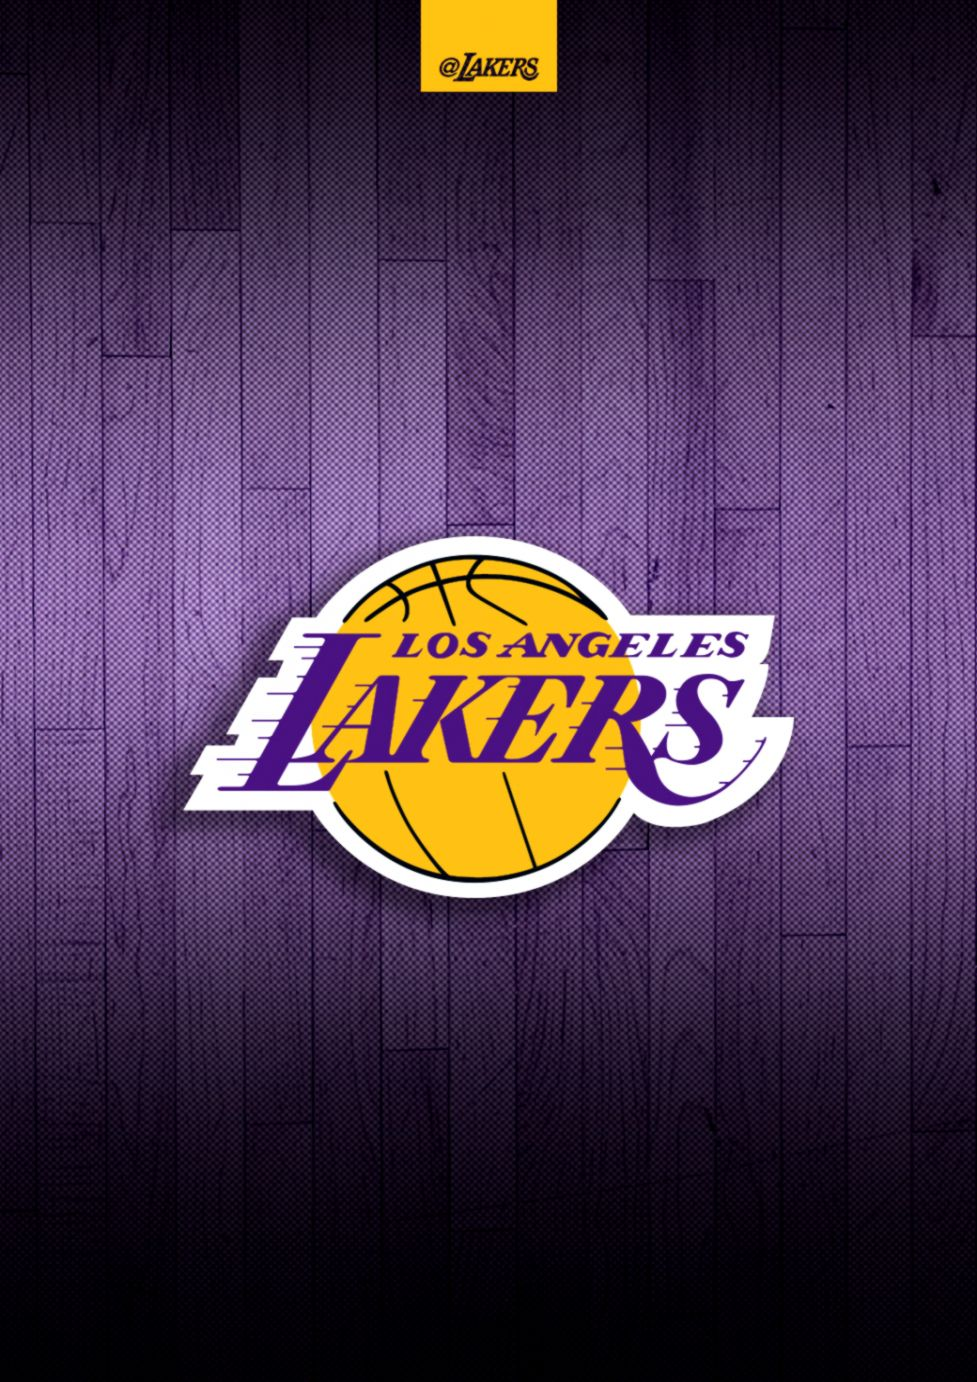 Lakers february wallpaper 2017 (93 Wallpapers) - HD Wallpapers